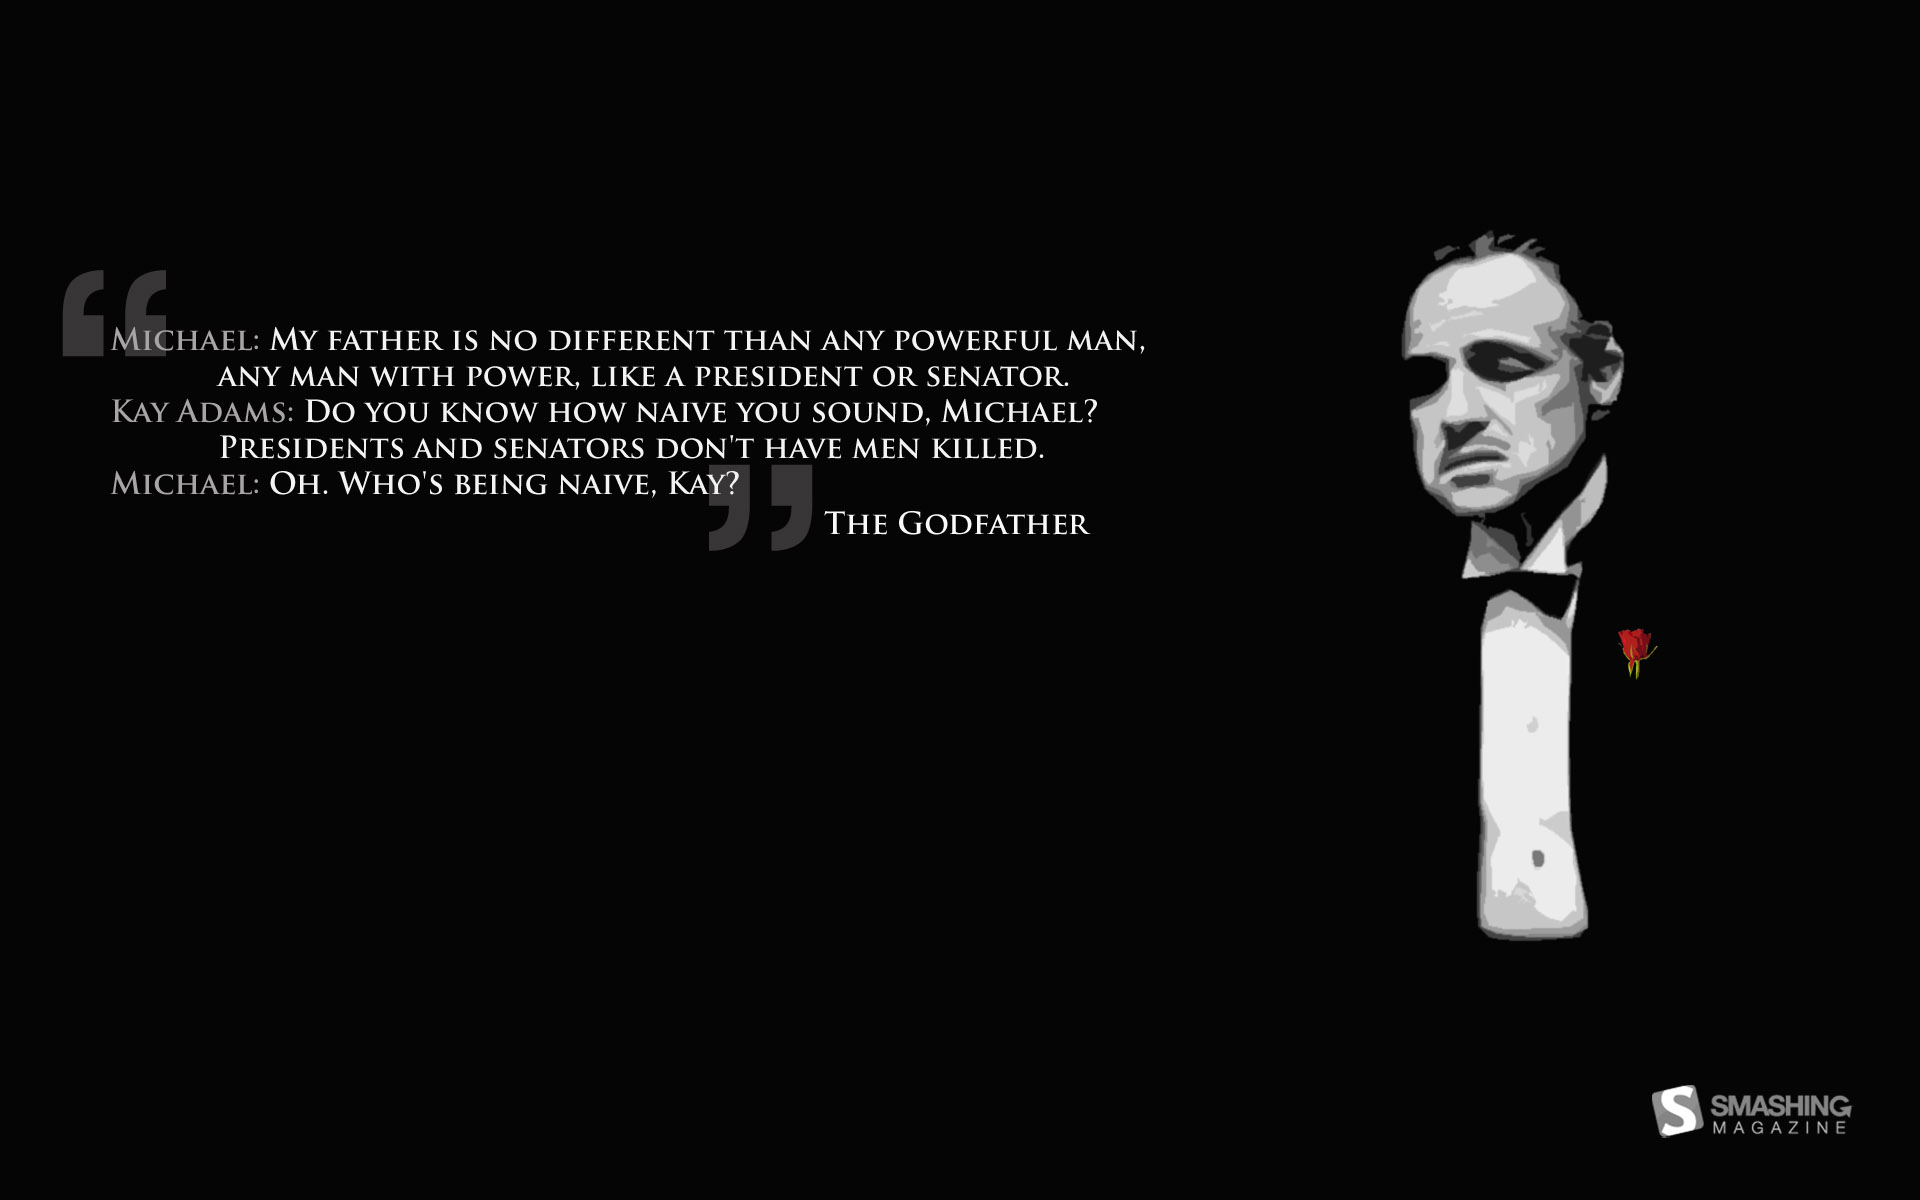 29 The Godfather HD Wallpapers | Backgrounds - Wallpaper Abyss